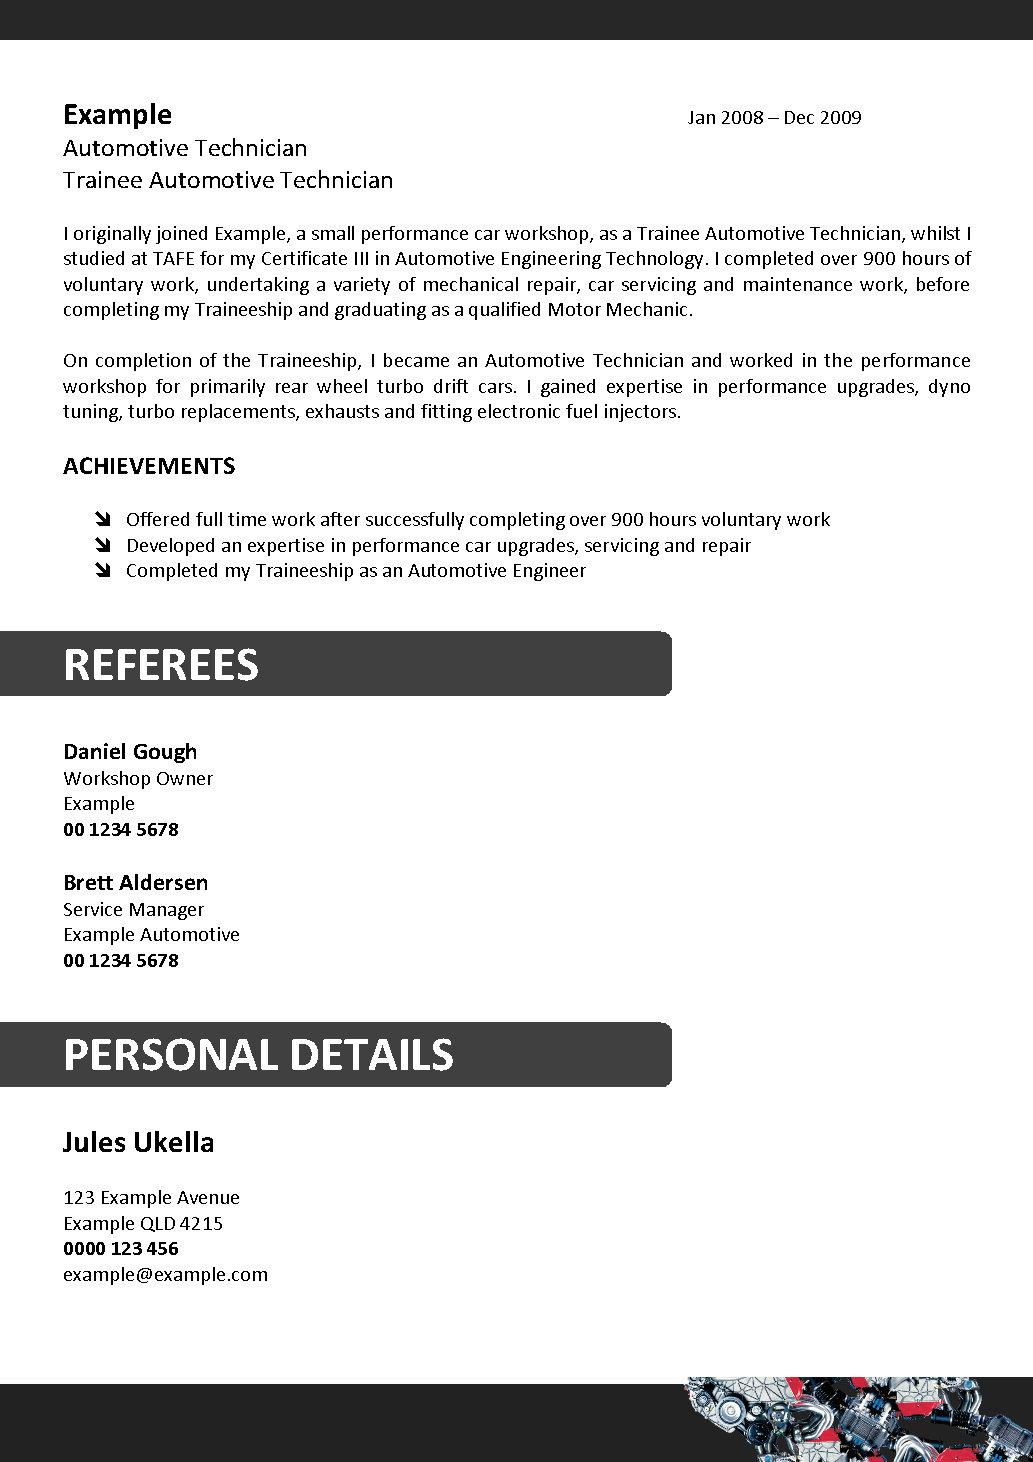 Automotive Technician Resume lube technician resume sample We Can Help With Professional Resume Writing Resume Templates